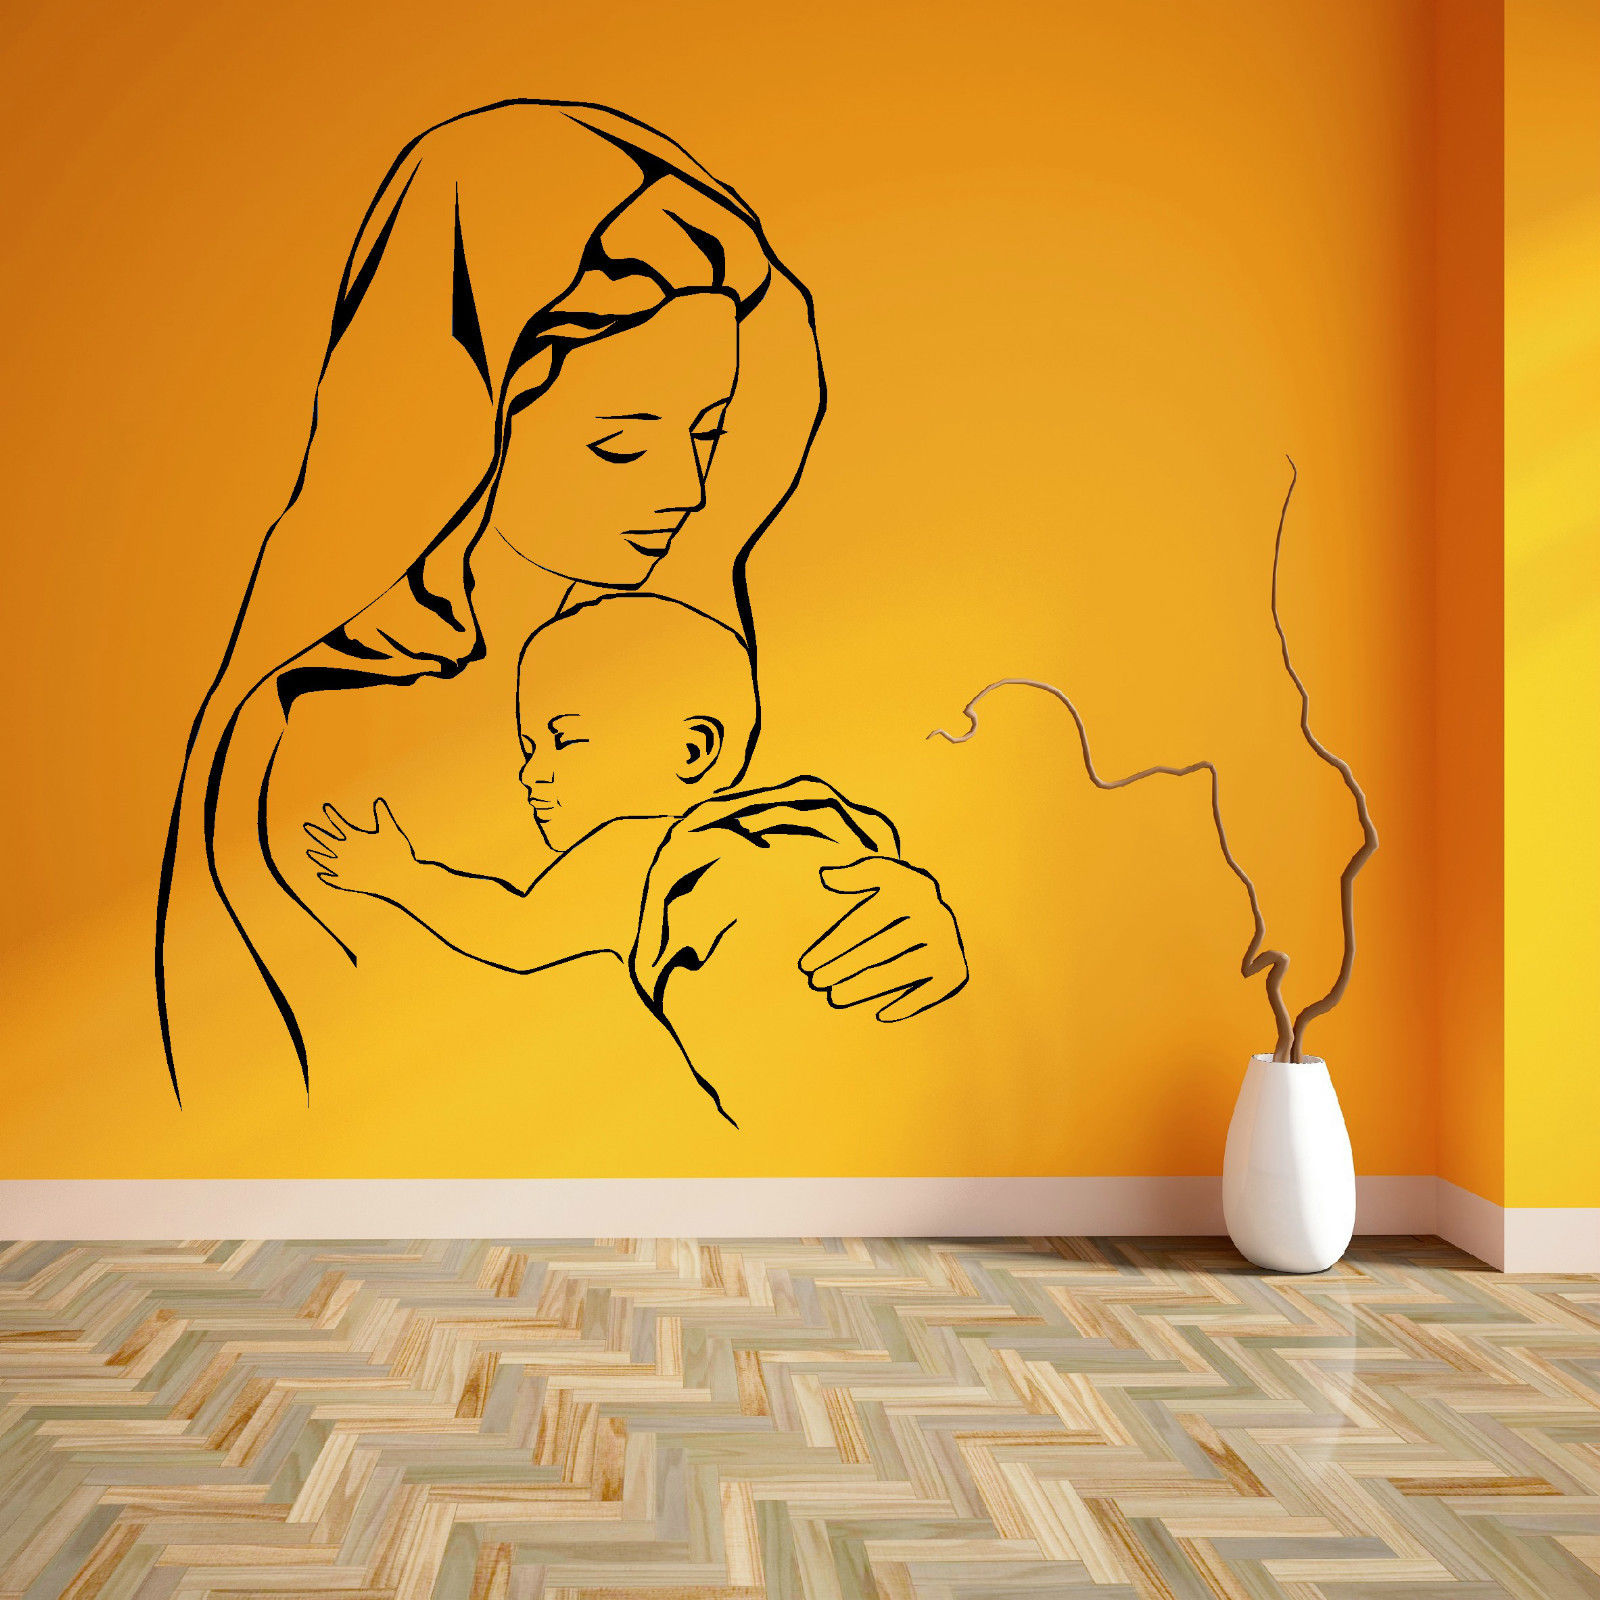 VIRGIN MARY AND JESUS MOTHER BABY MADONNA CHILD Vinyl wall art sticker decal free shipping(China (Mainland))